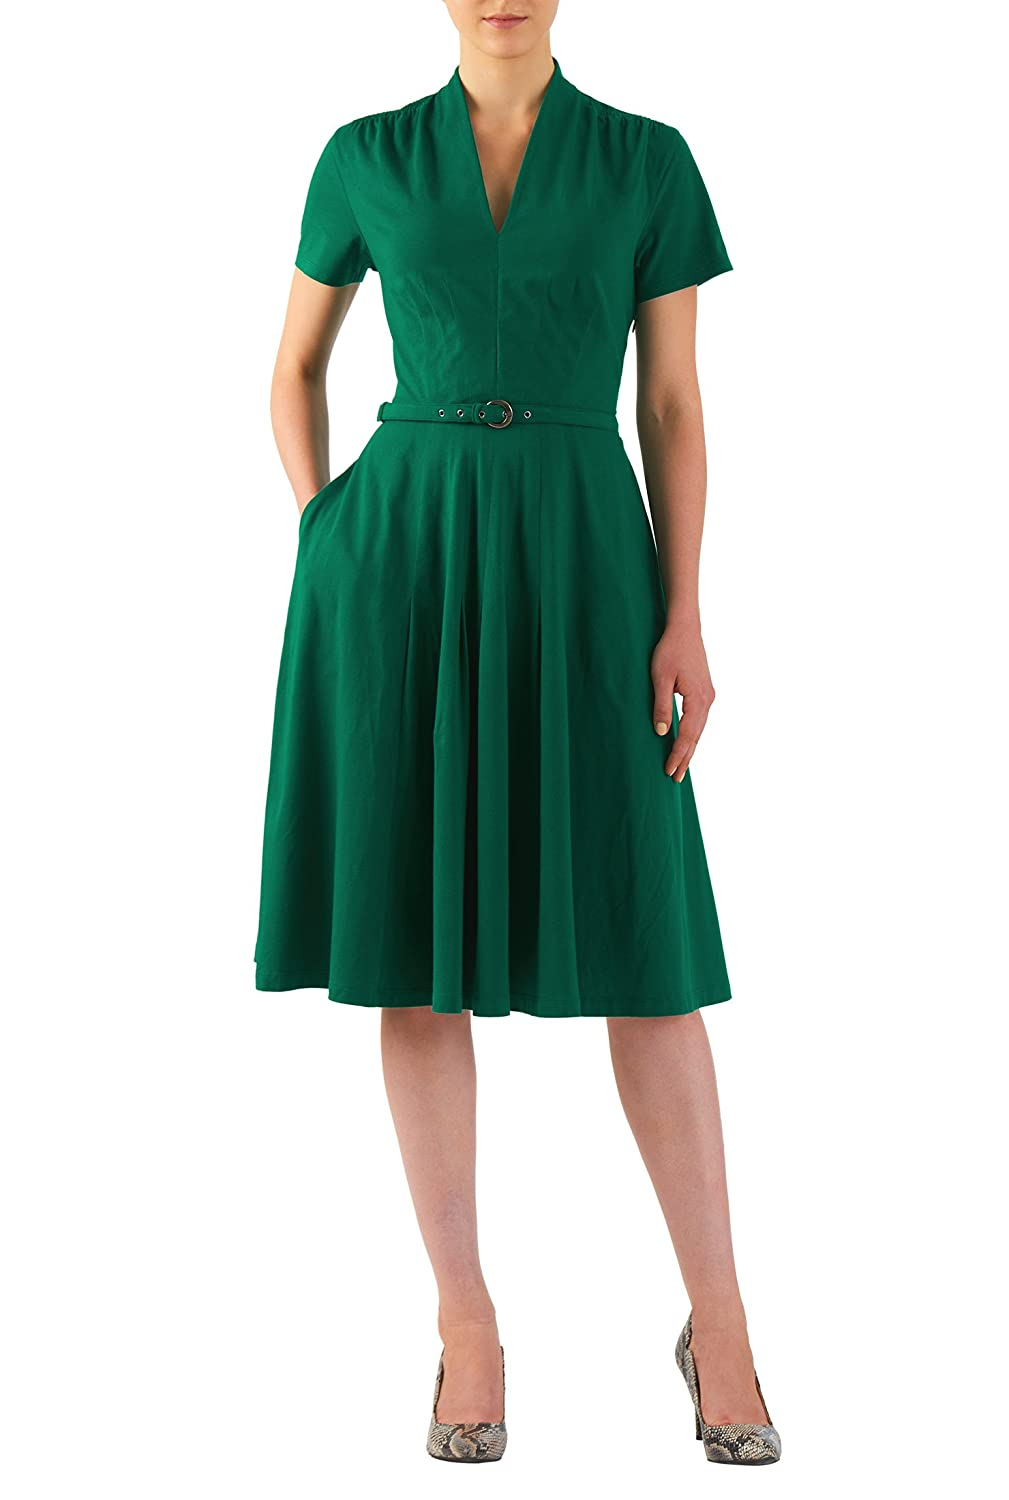 1940s Style Dresses and Clothing eShakti Womens Cotton knit belted dress $56.95 AT vintagedancer.com